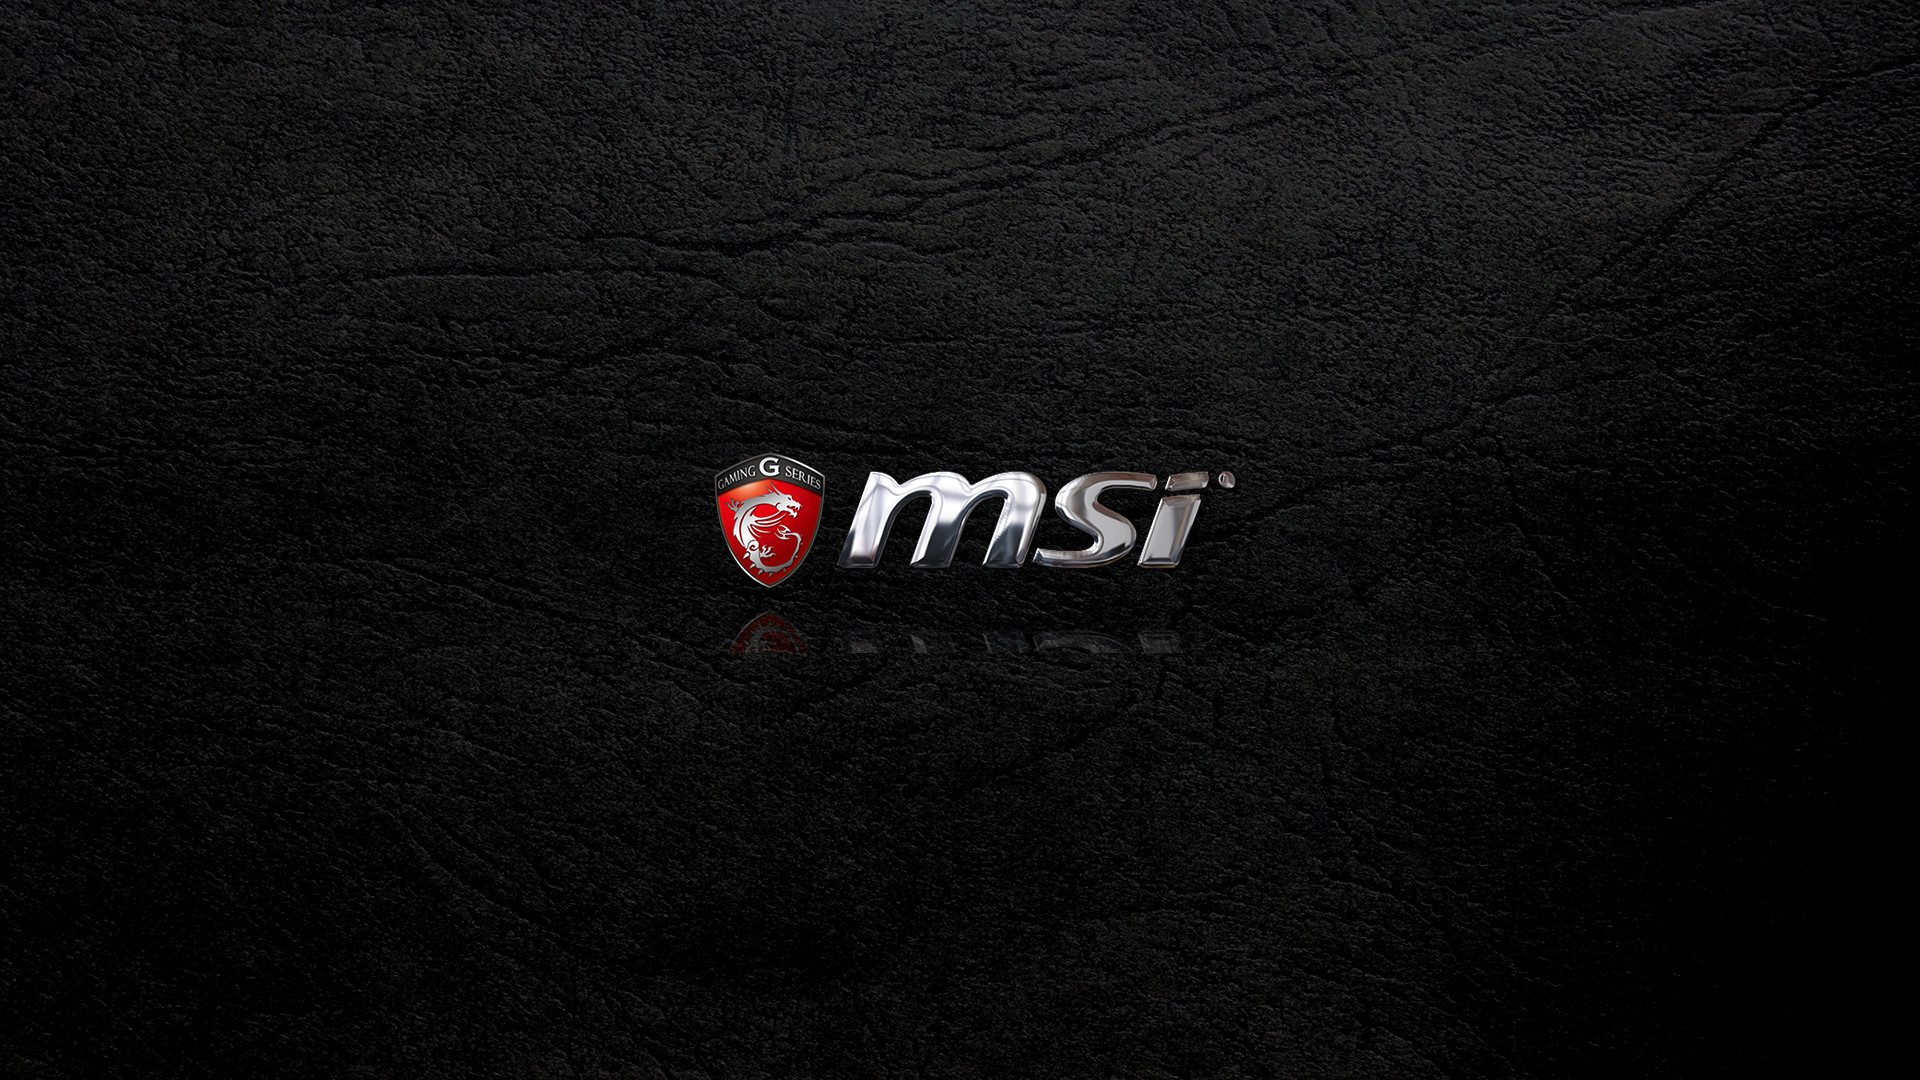 1920x1080 Thought I would share some wallpaper that I have created black leather msi.jpg  ...